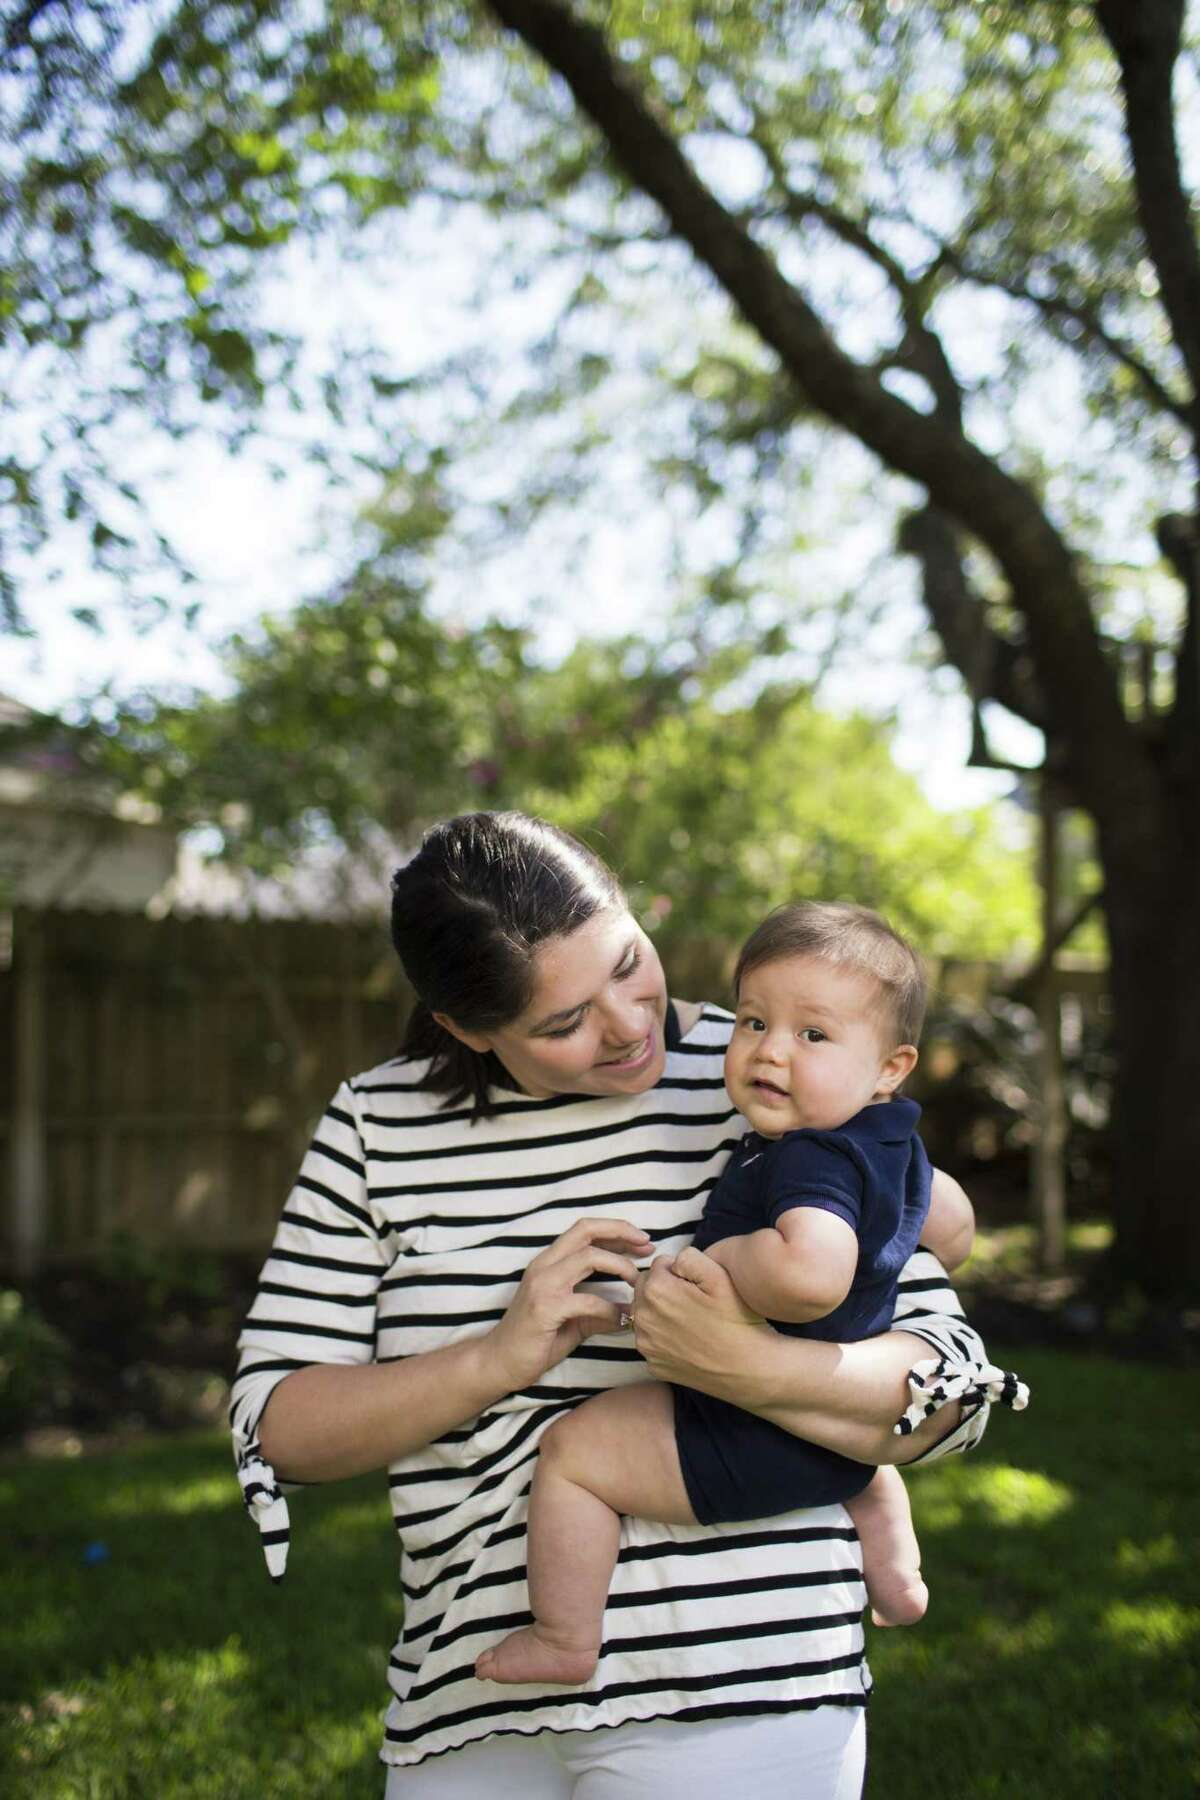 Jessica Dolan, a Neonatal Intensive Care Unit (NICU) nurse at Memorial Hermann Memorial City Medical Center holds her baby Reid Dolan at her home in Sugar Land.